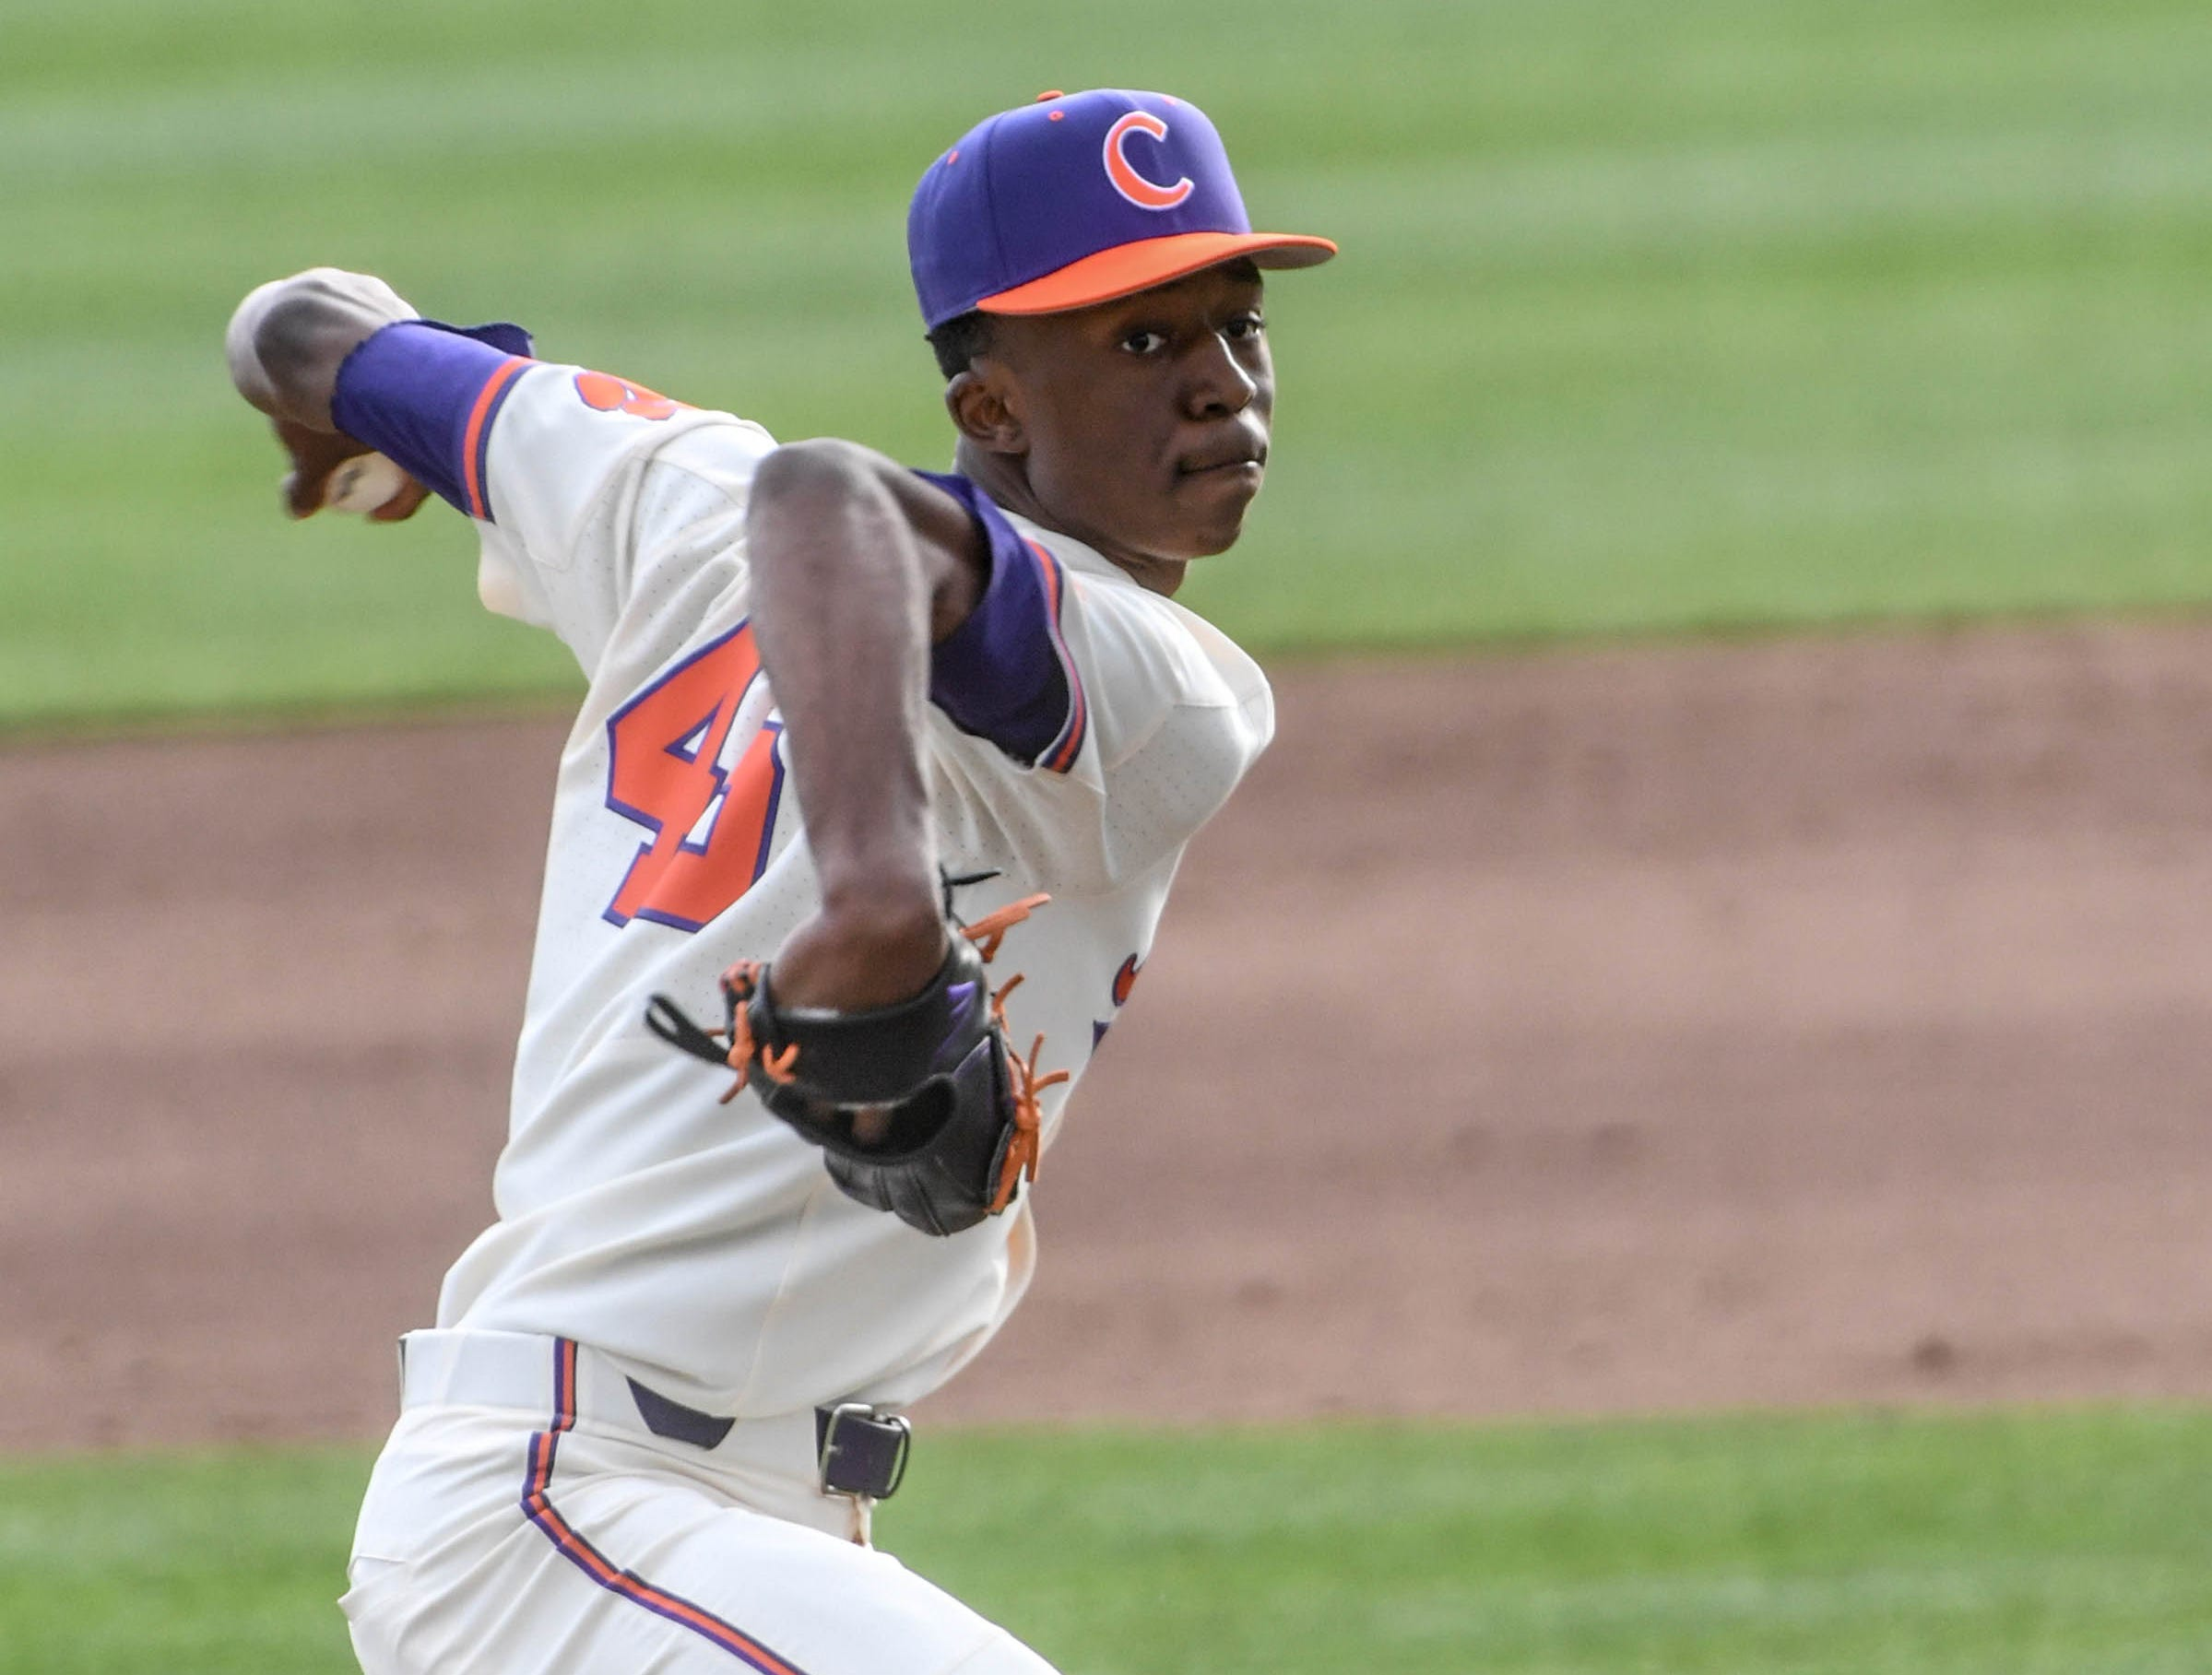 Clemson freshman Keyshawn Askew(46) pitches against Charlotte during the top of the second inning at Doug Kingsmore Stadium in Clemson Monday, February 18, 2019.